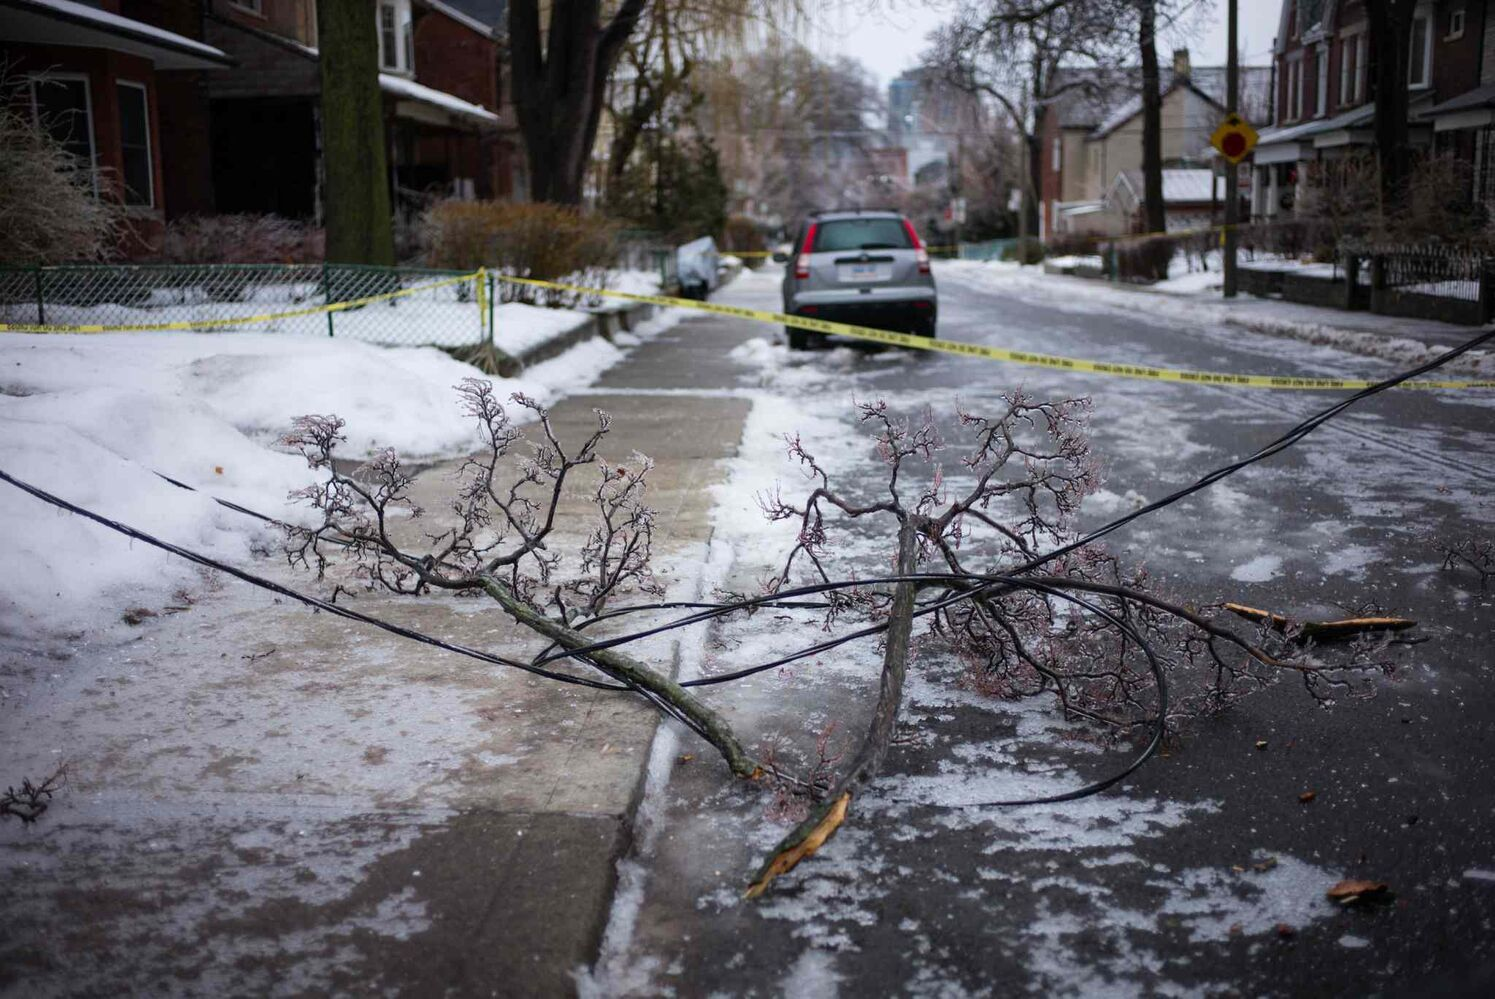 A downed power line is tangled up with a fallen branch near Toronto's Trinity Bellwoods Park Sunday.